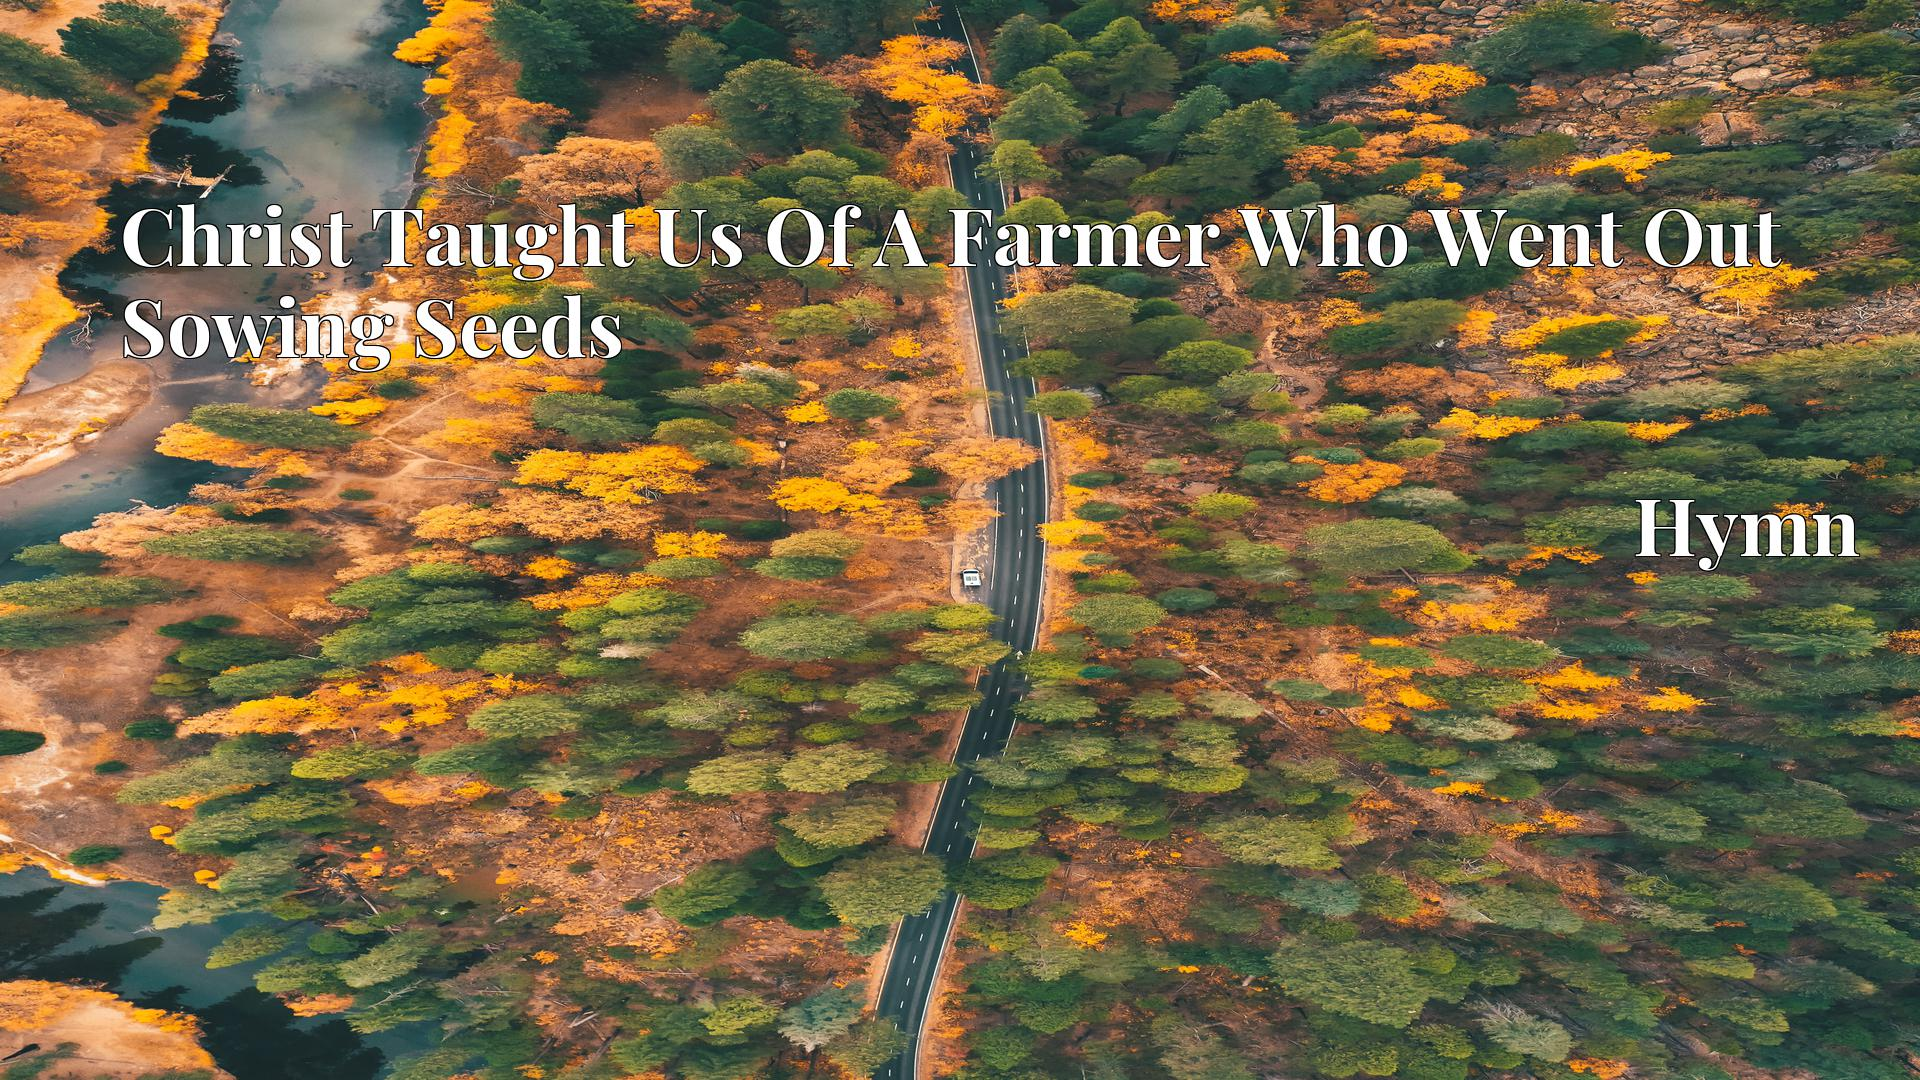 Christ Taught Us Of A Farmer Who Went Out Sowing Seeds - Hymn